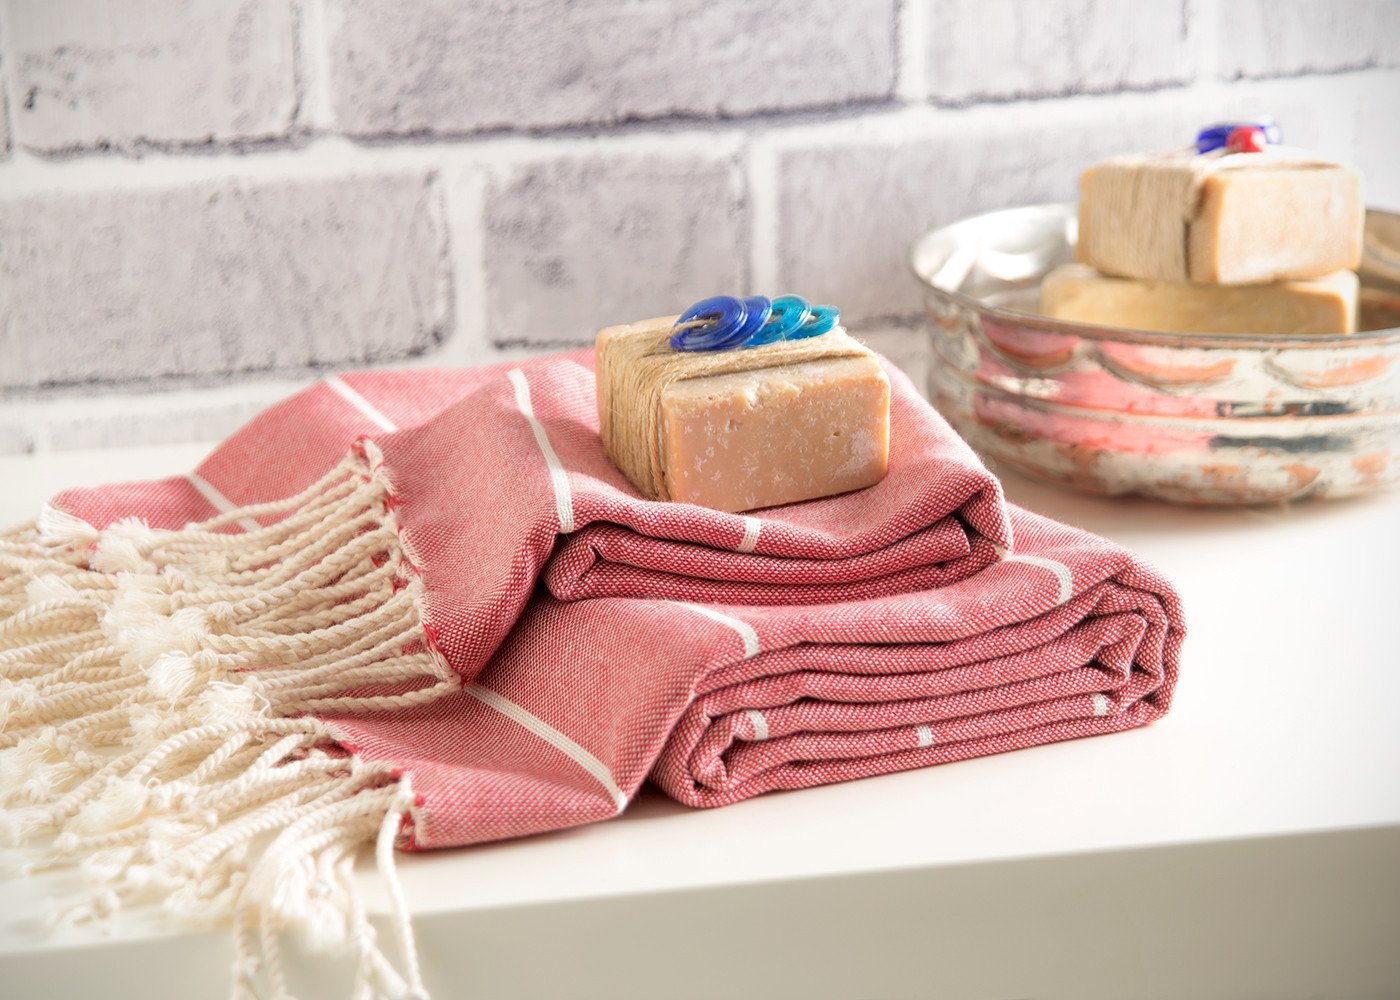 Set of 2 Peshtemal & Peshkir Towels 100% Natural Cotton